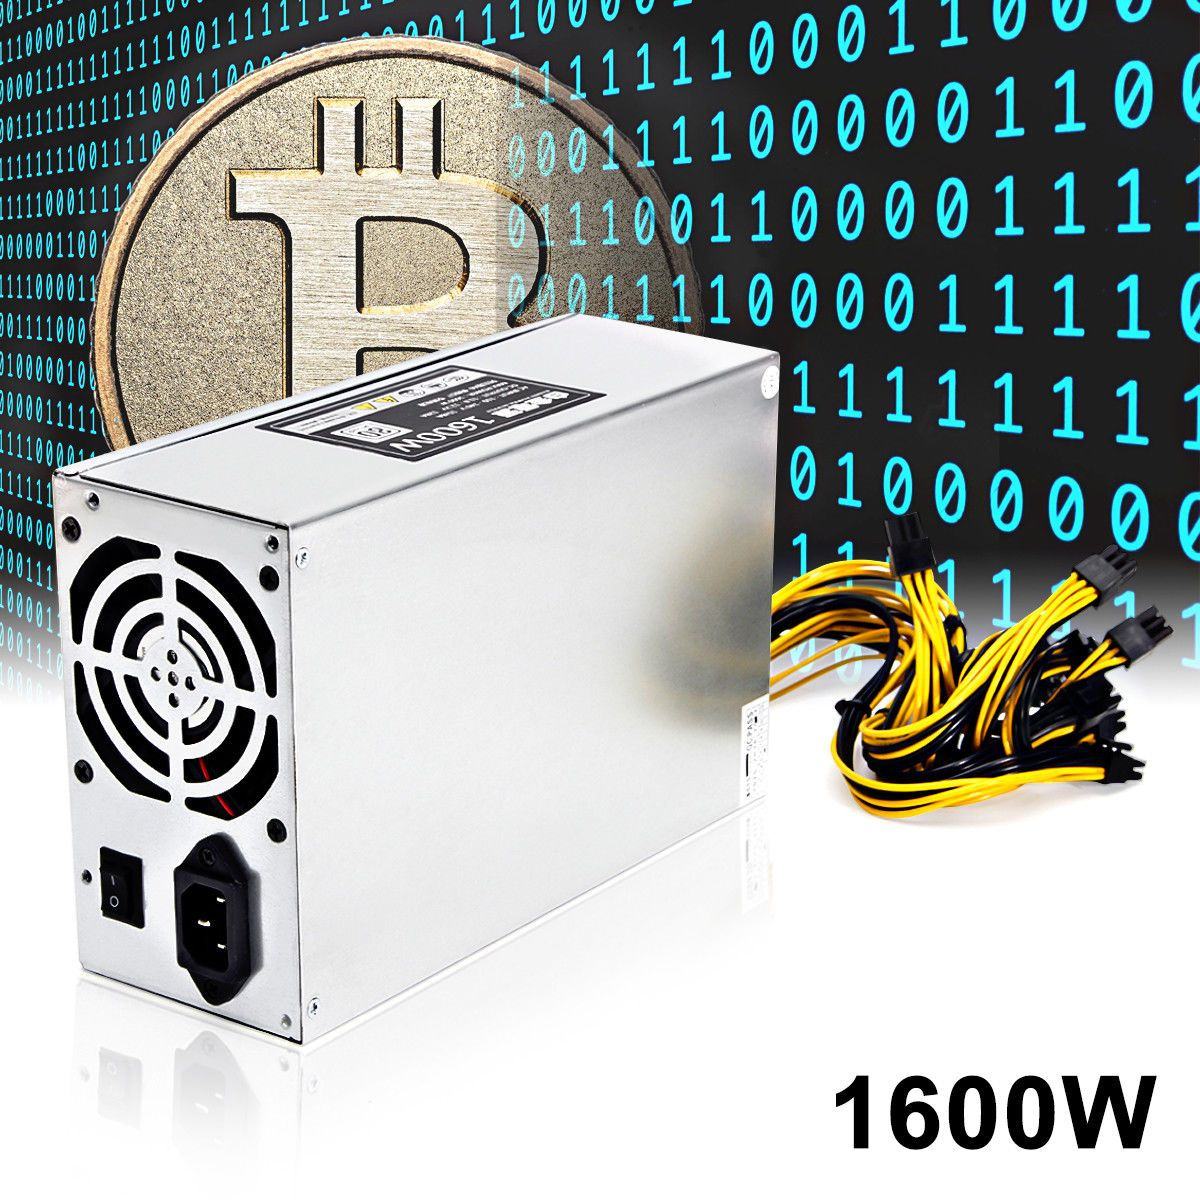 What Pool Should I Join With My Antminer S9 What Scrypt Is